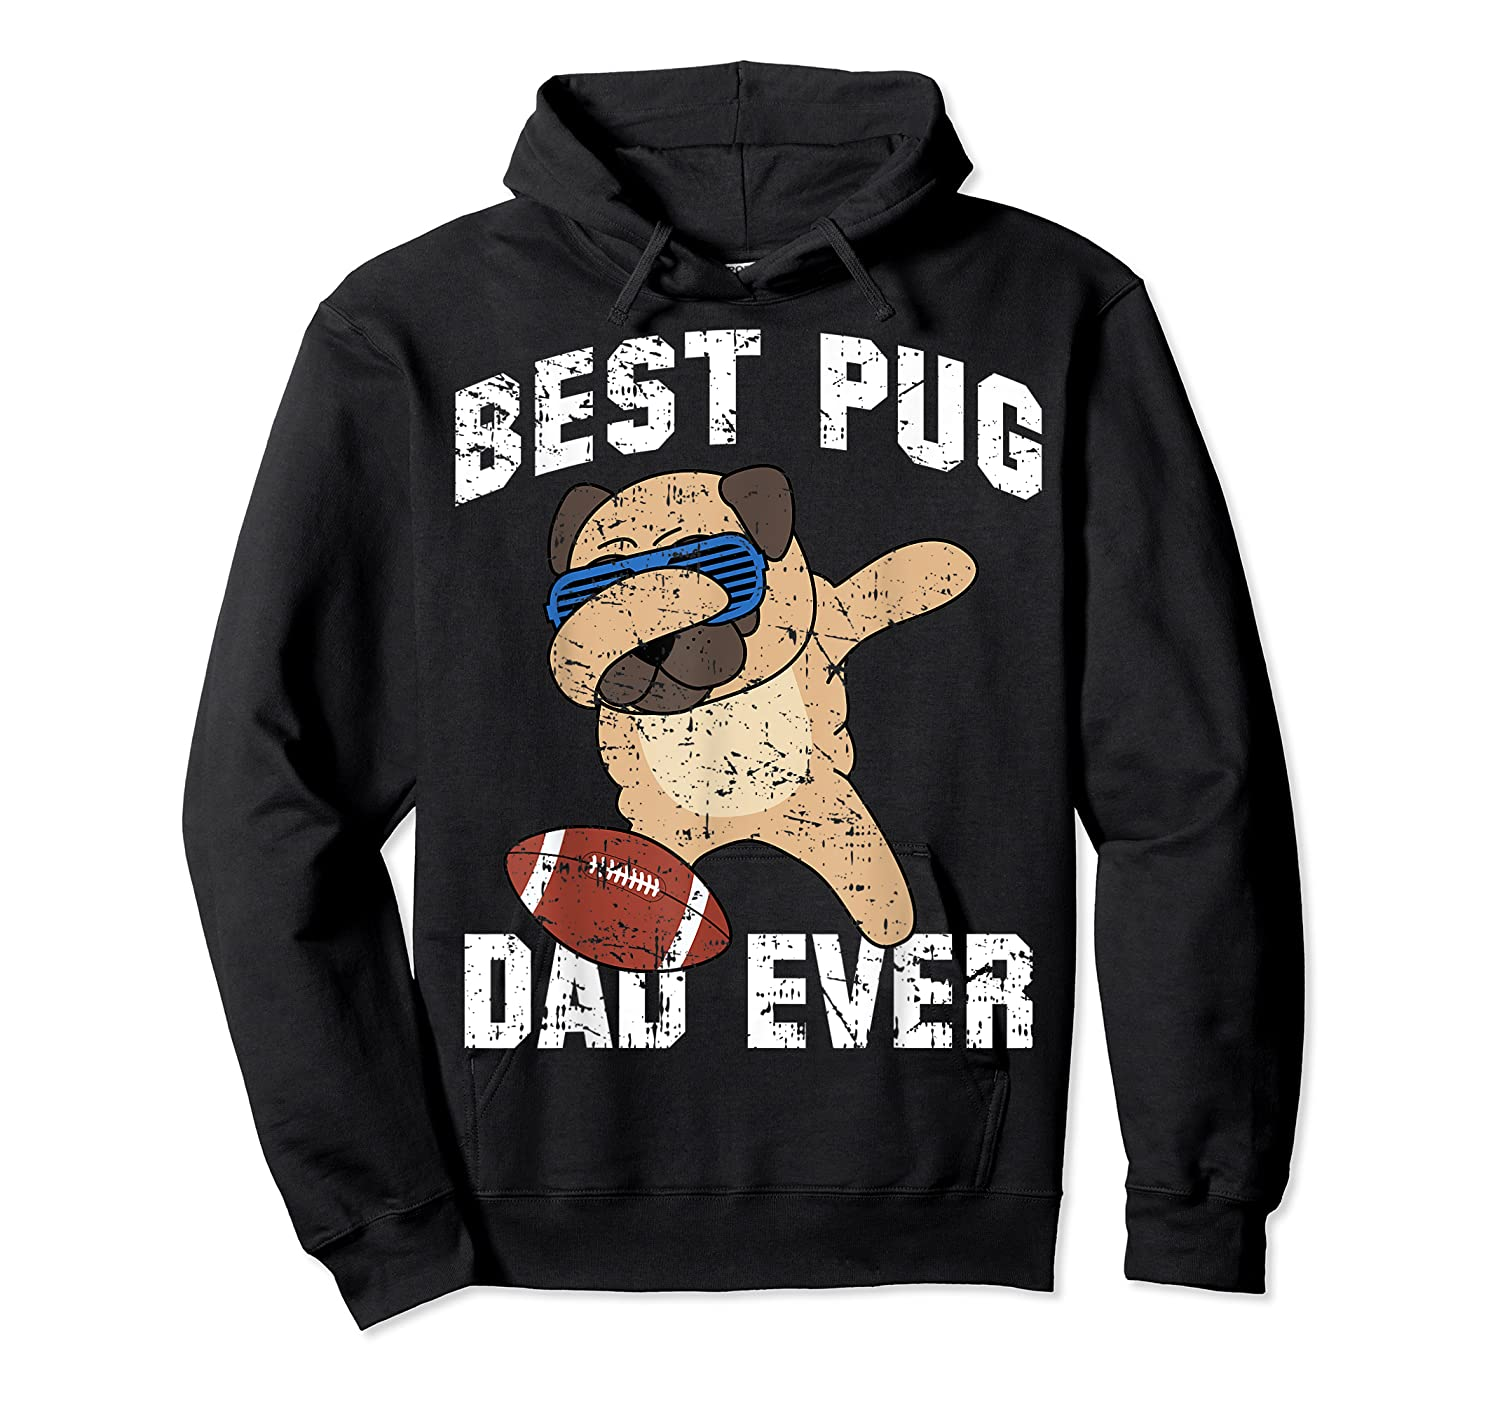 Dabbing Pug Dog Football Dad Funny Fathers Day Out Shirts Unisex Pullover Hoodie